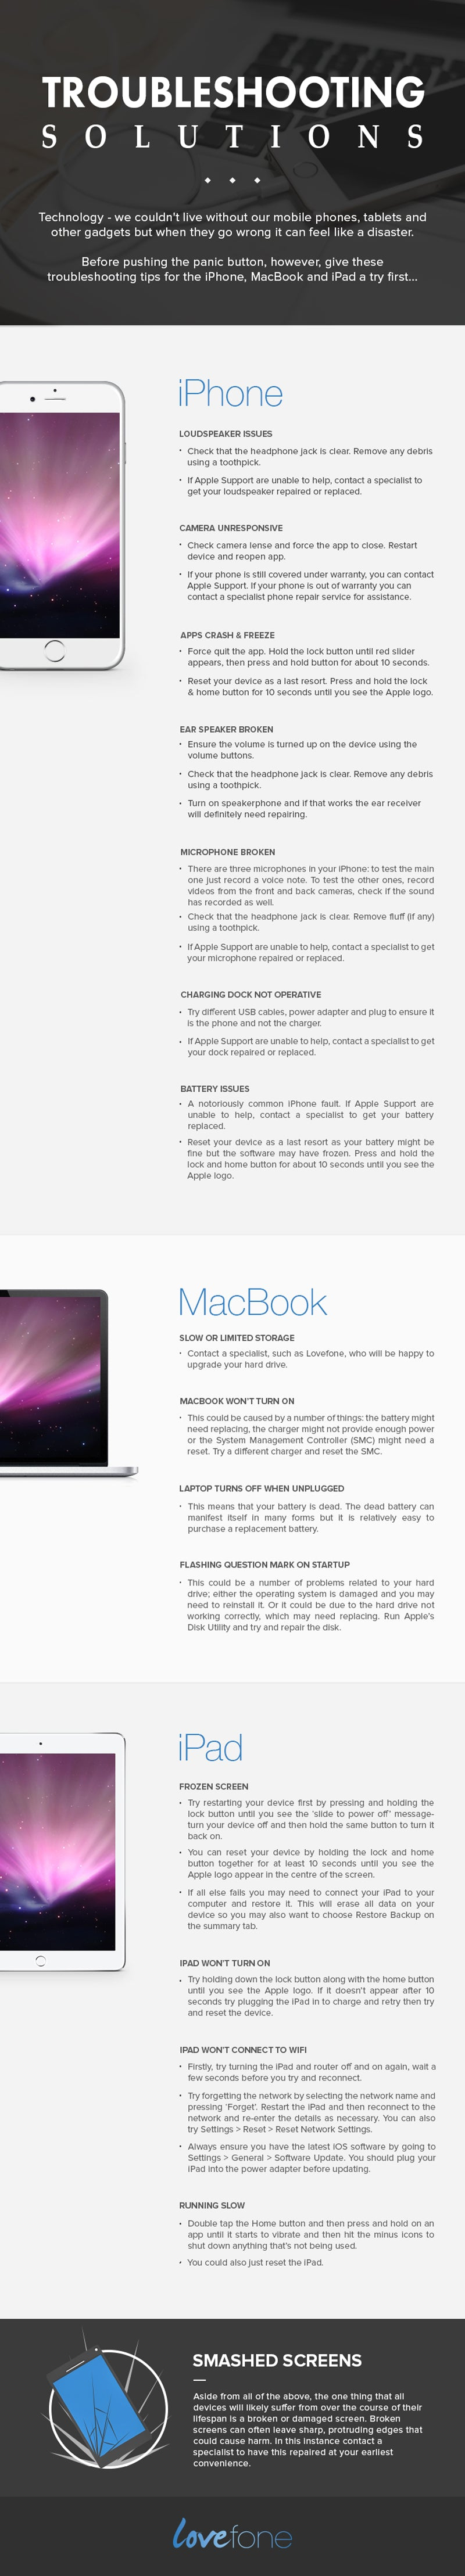 Troubleshoot your Apple related problems 2